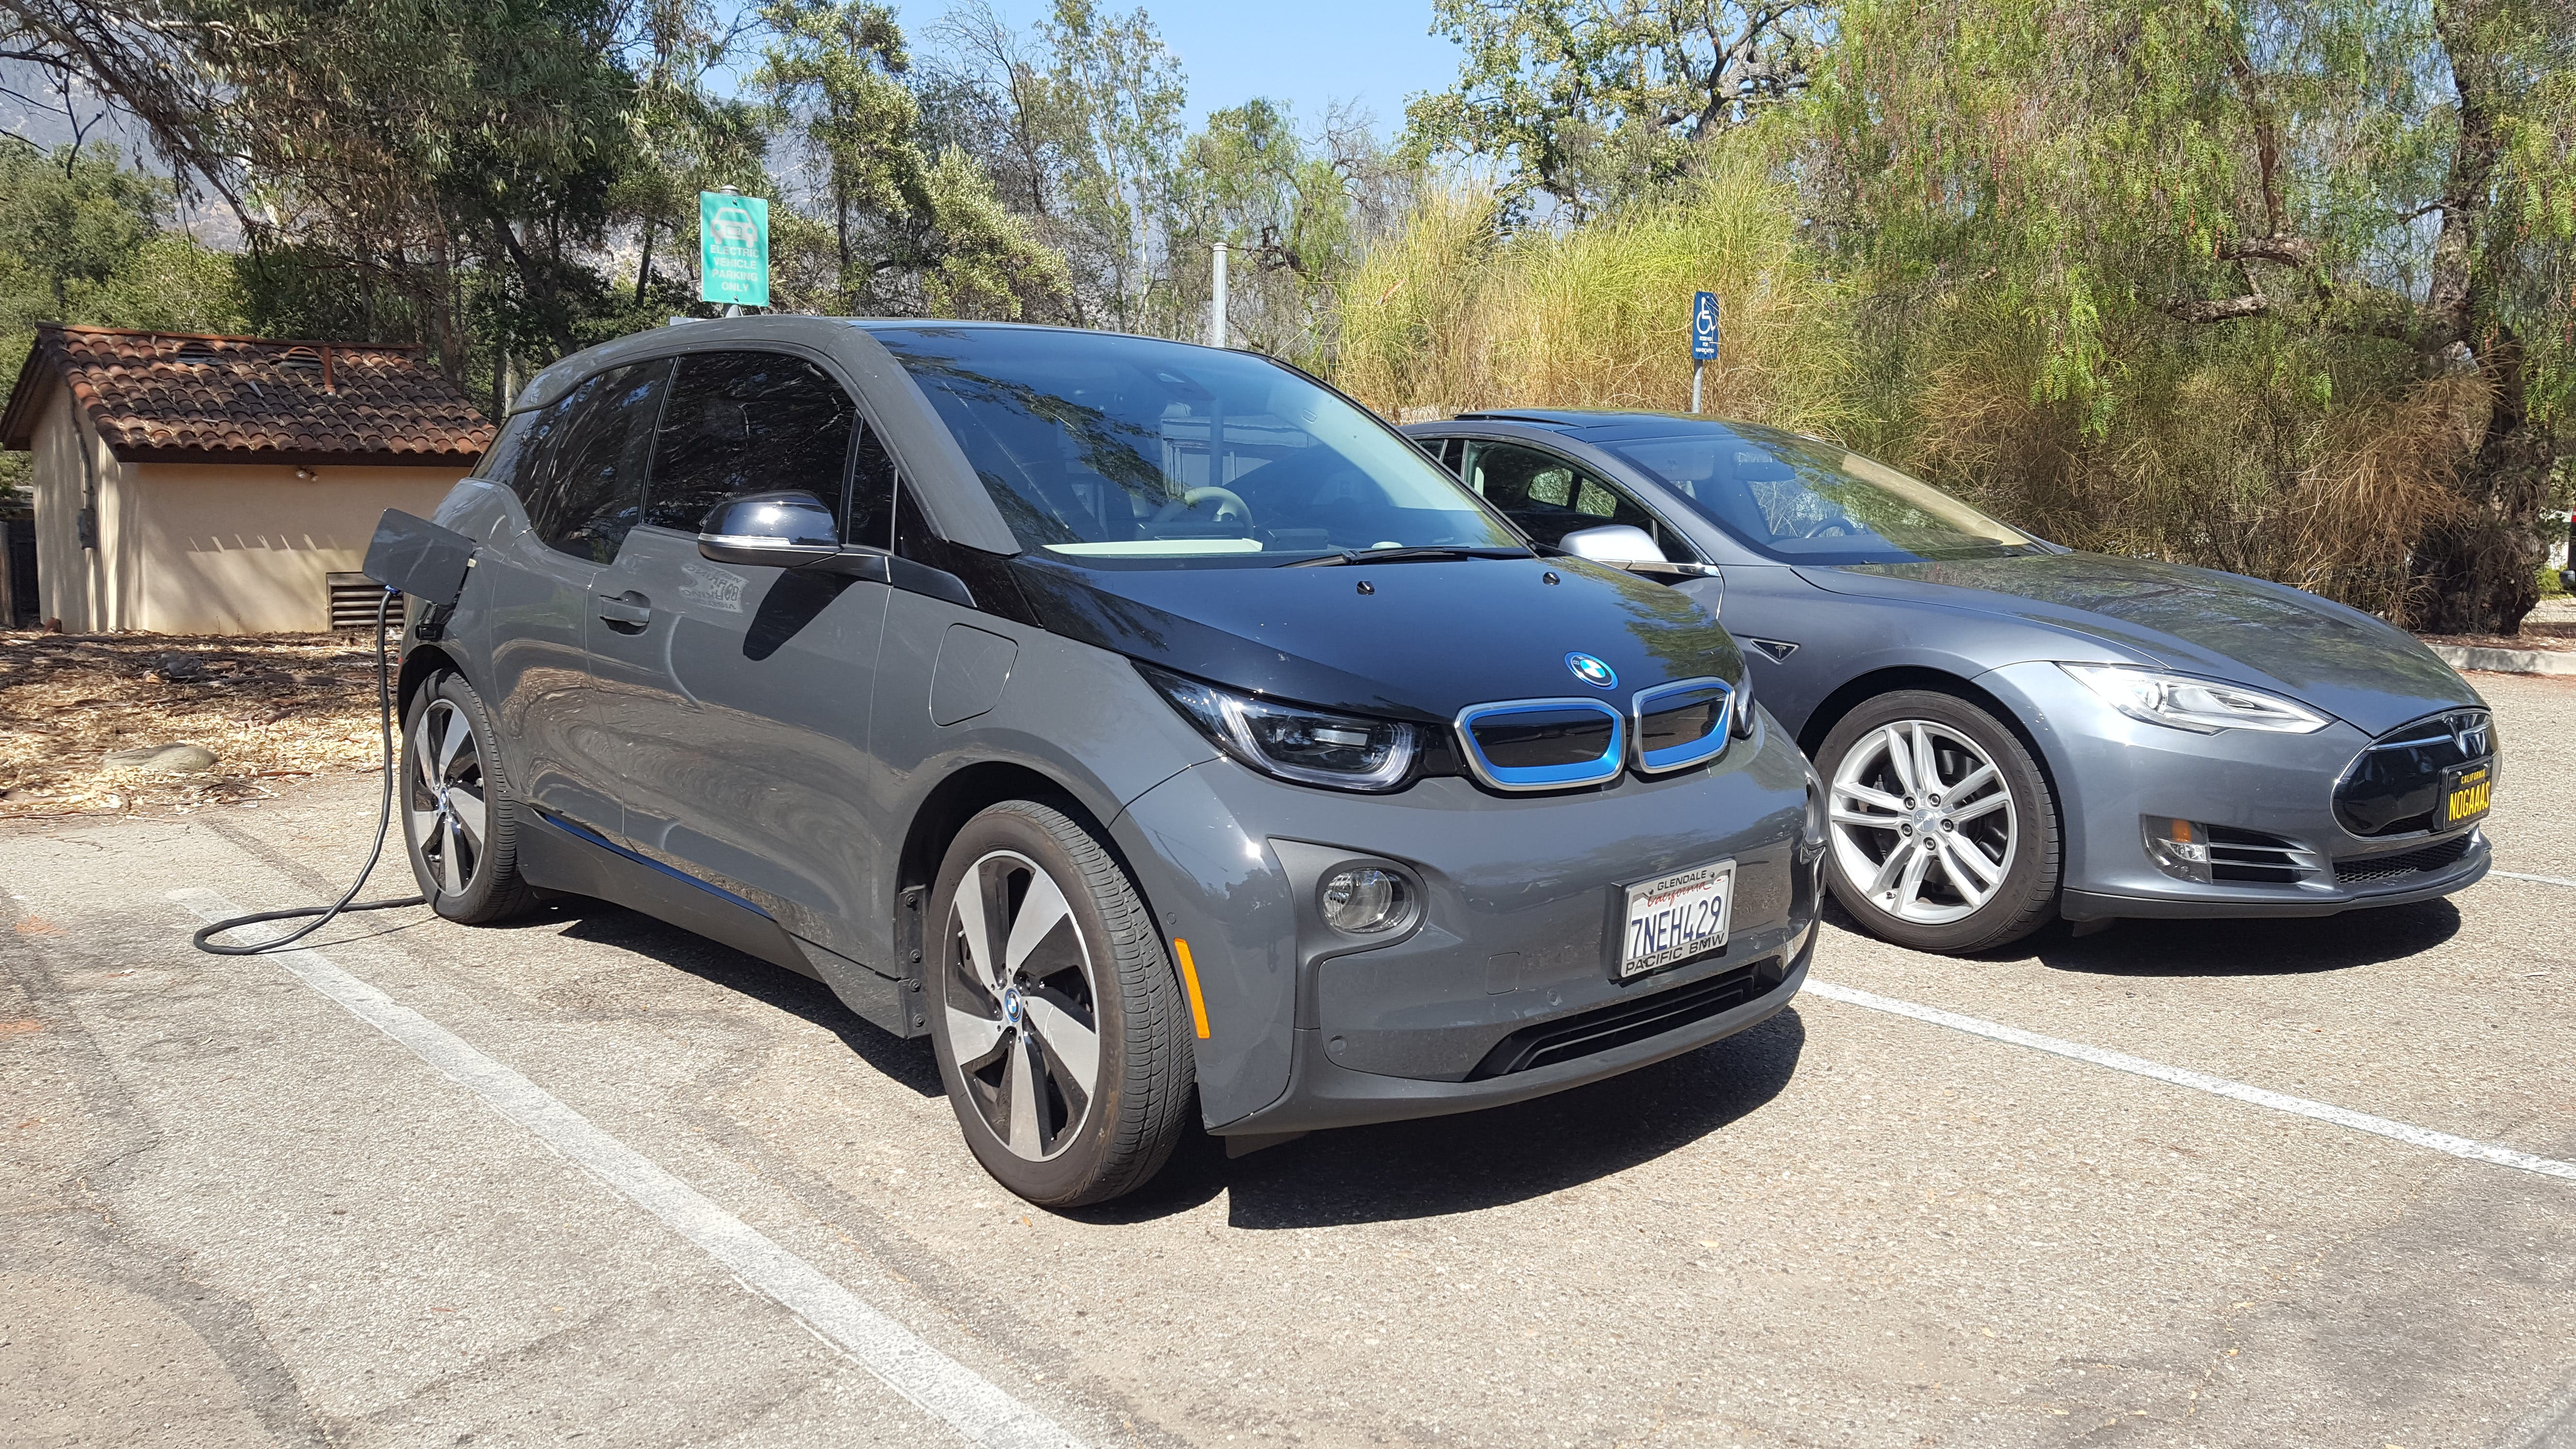 24 Hours With The New, Longer Range 2017 BMW i3 (CleanTechnica